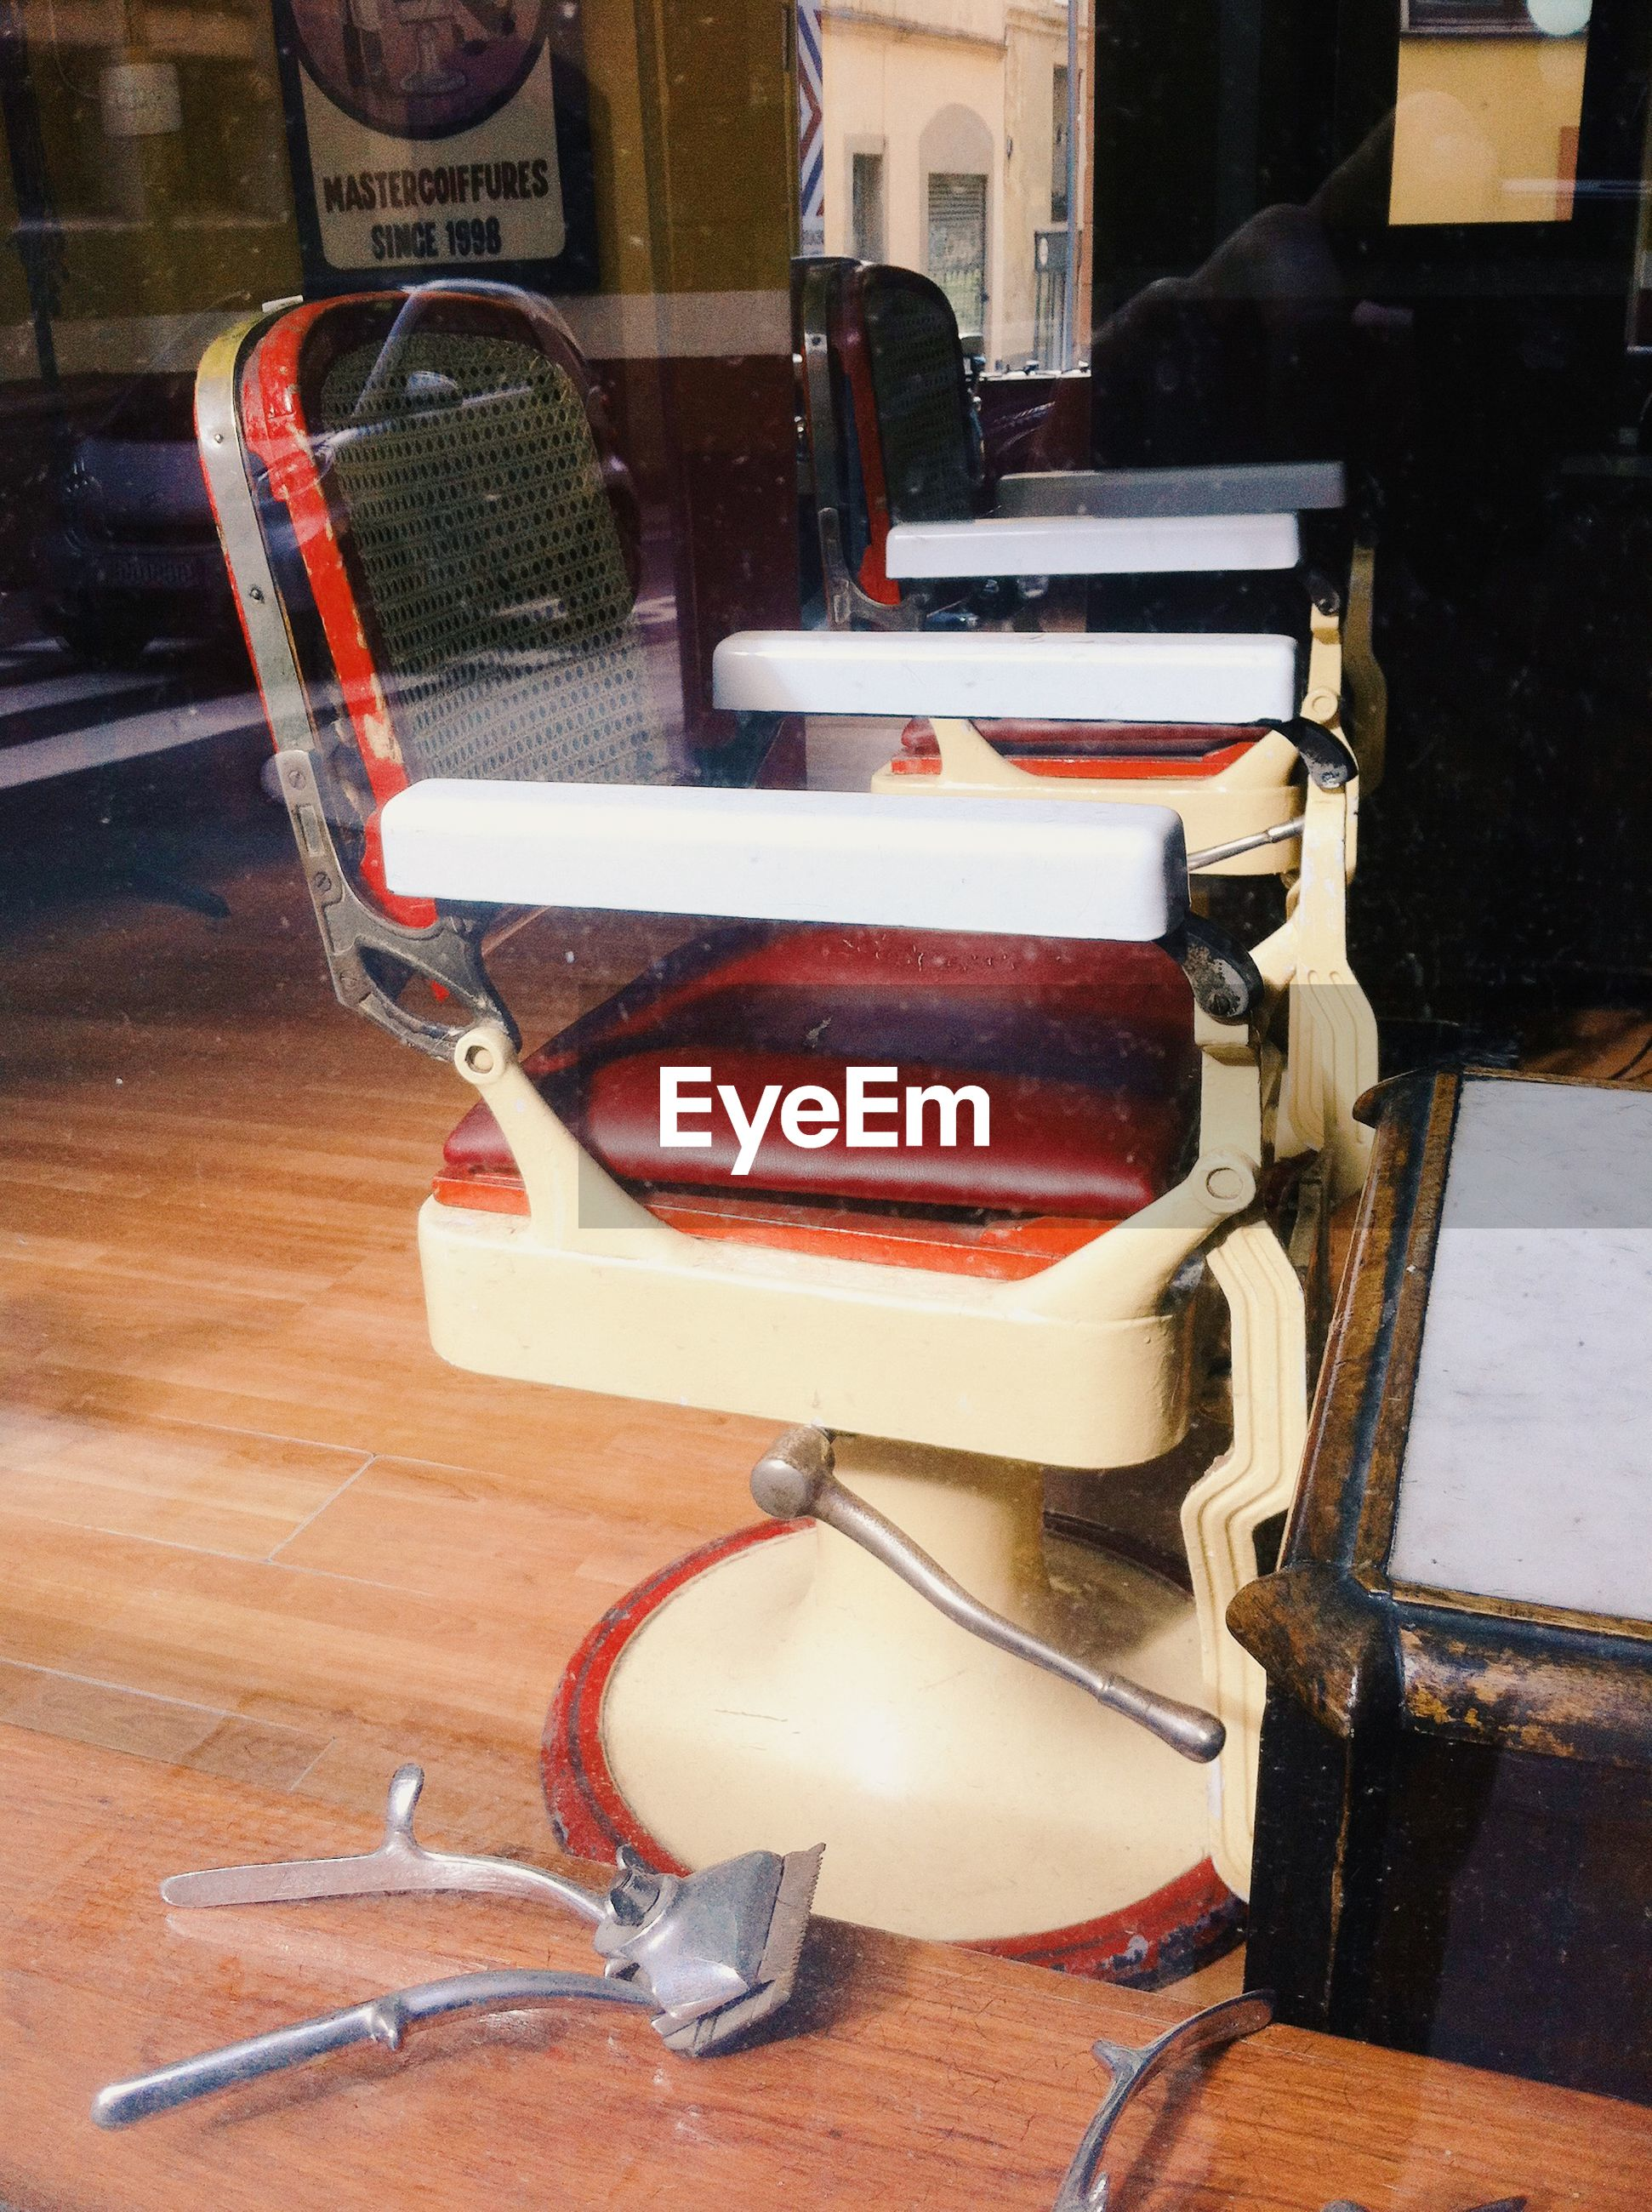 Chairs at barber shop seen through glass window